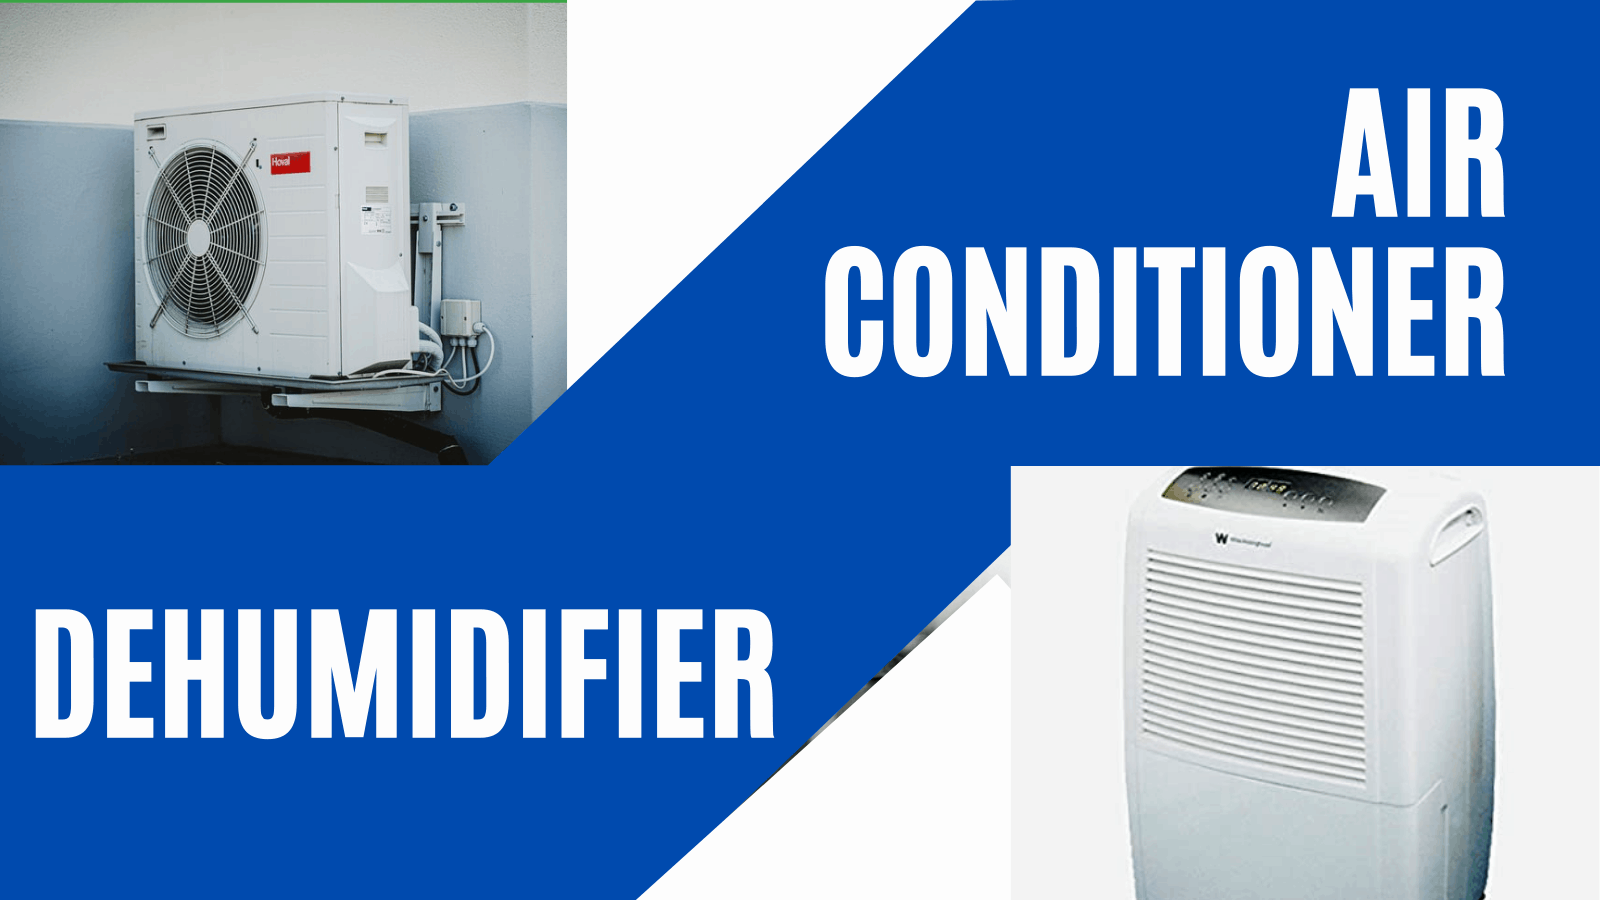 What are the differences between air conditioners and dehumidifiers?